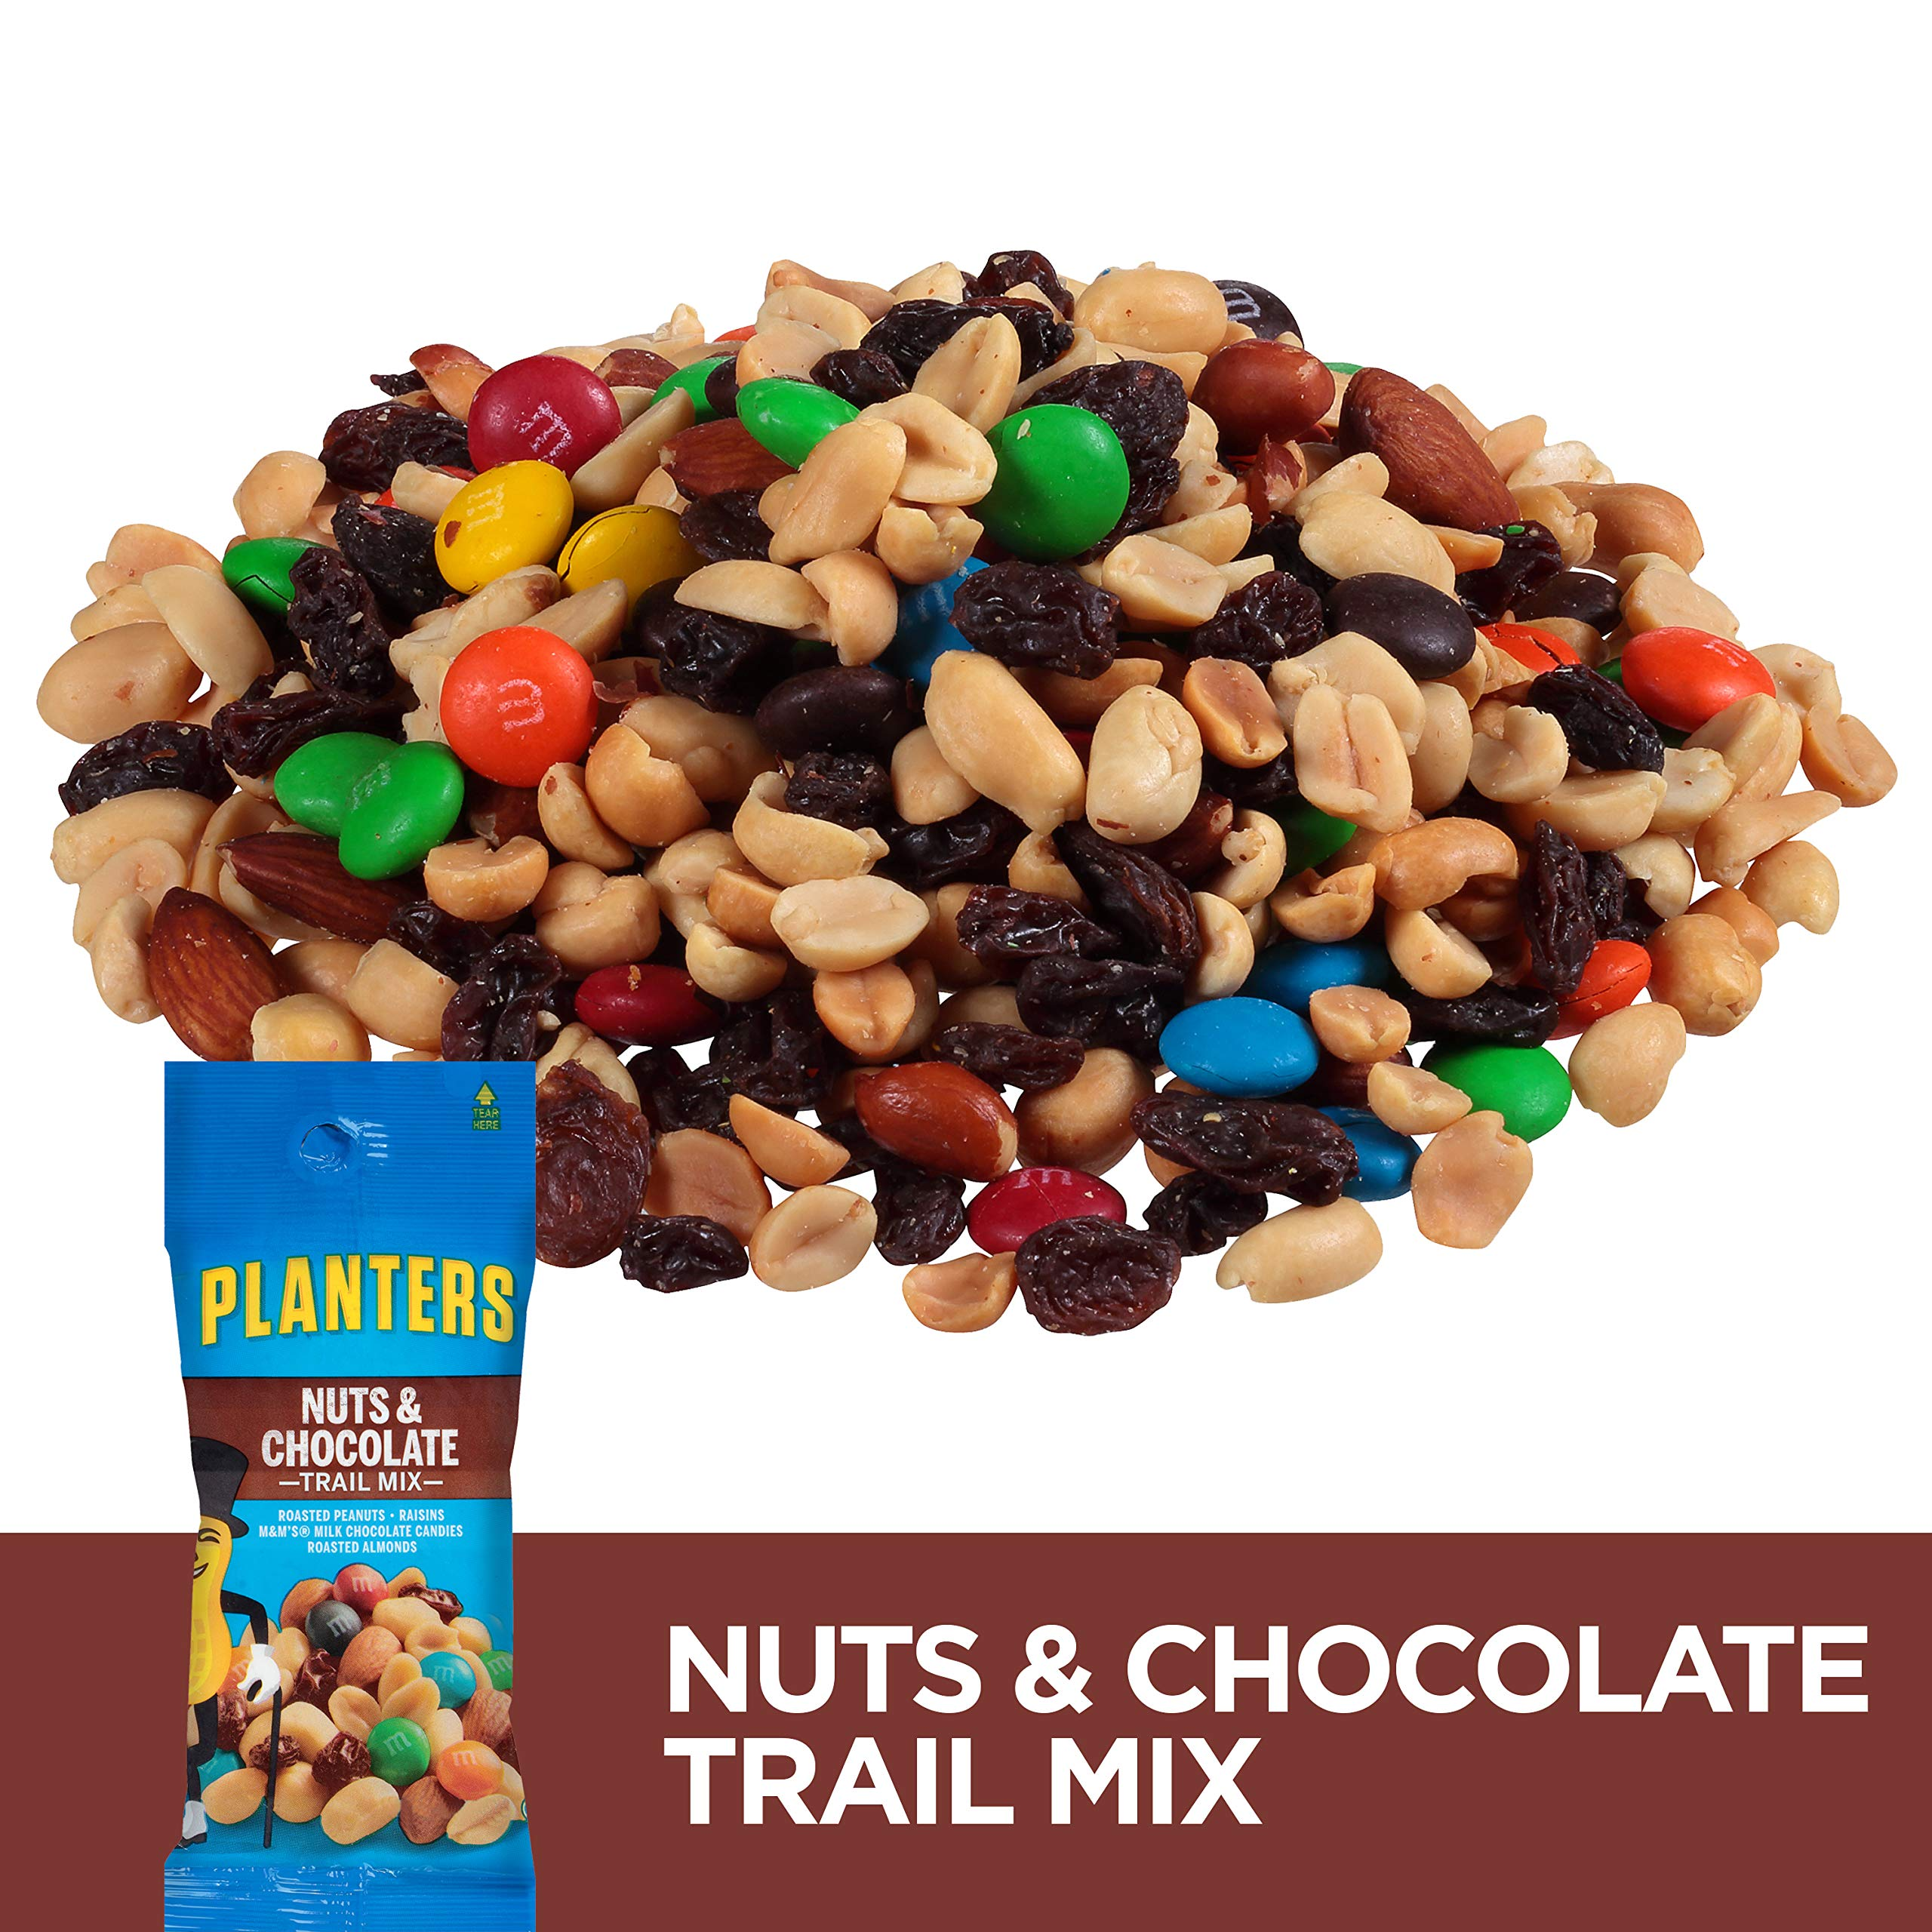 Planters Nuts & Chocolate M&M's Trail Mix, 2 oz Bag (Pack of 72) by Planters (Image #4)